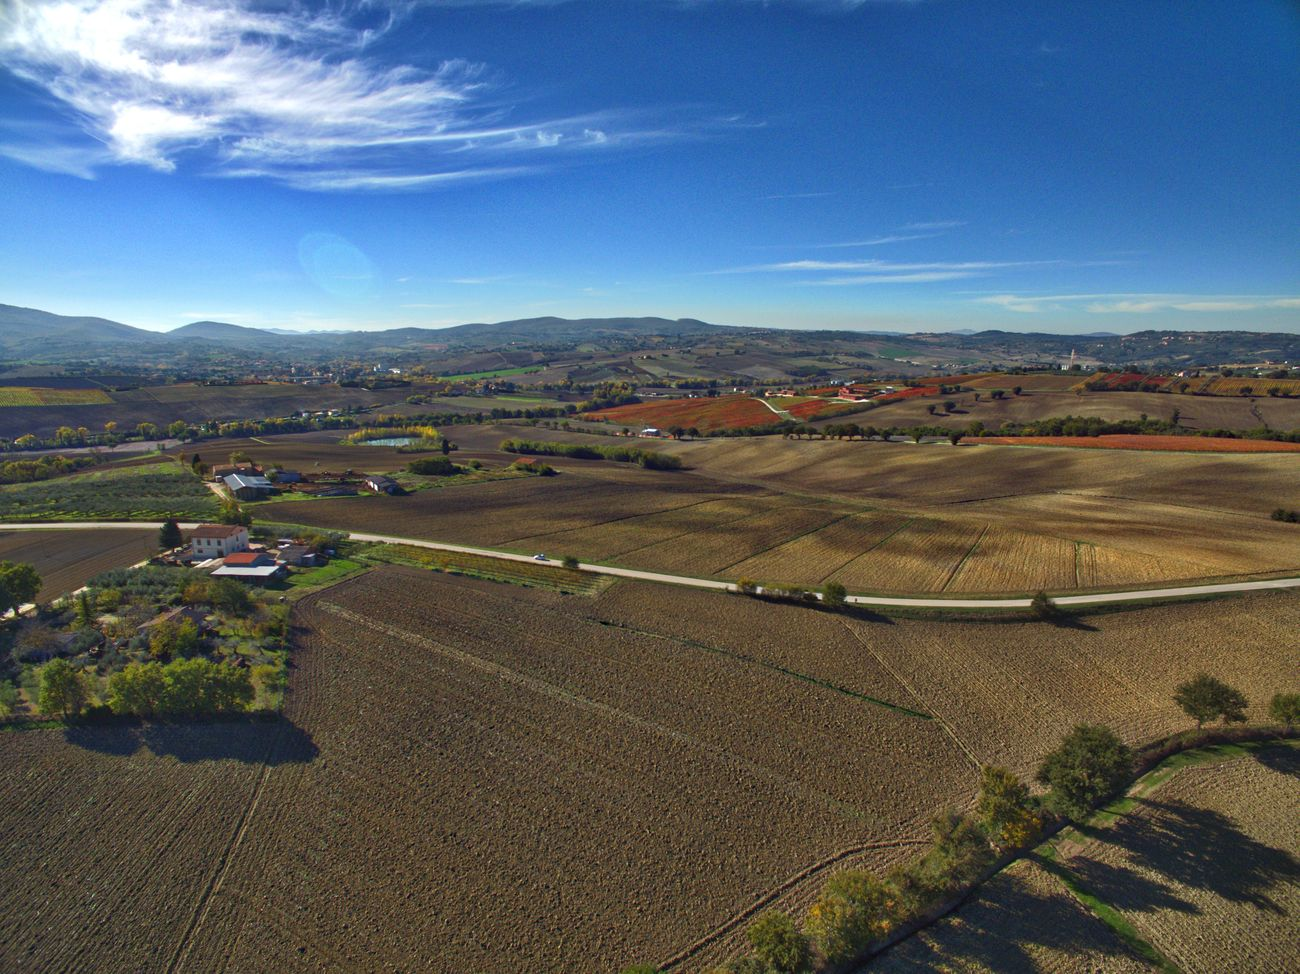 Showcase: February Dji DJI Phantom 3 Advanced Dronephotography Drone  Hello World Arial Shot Umbria Campagne